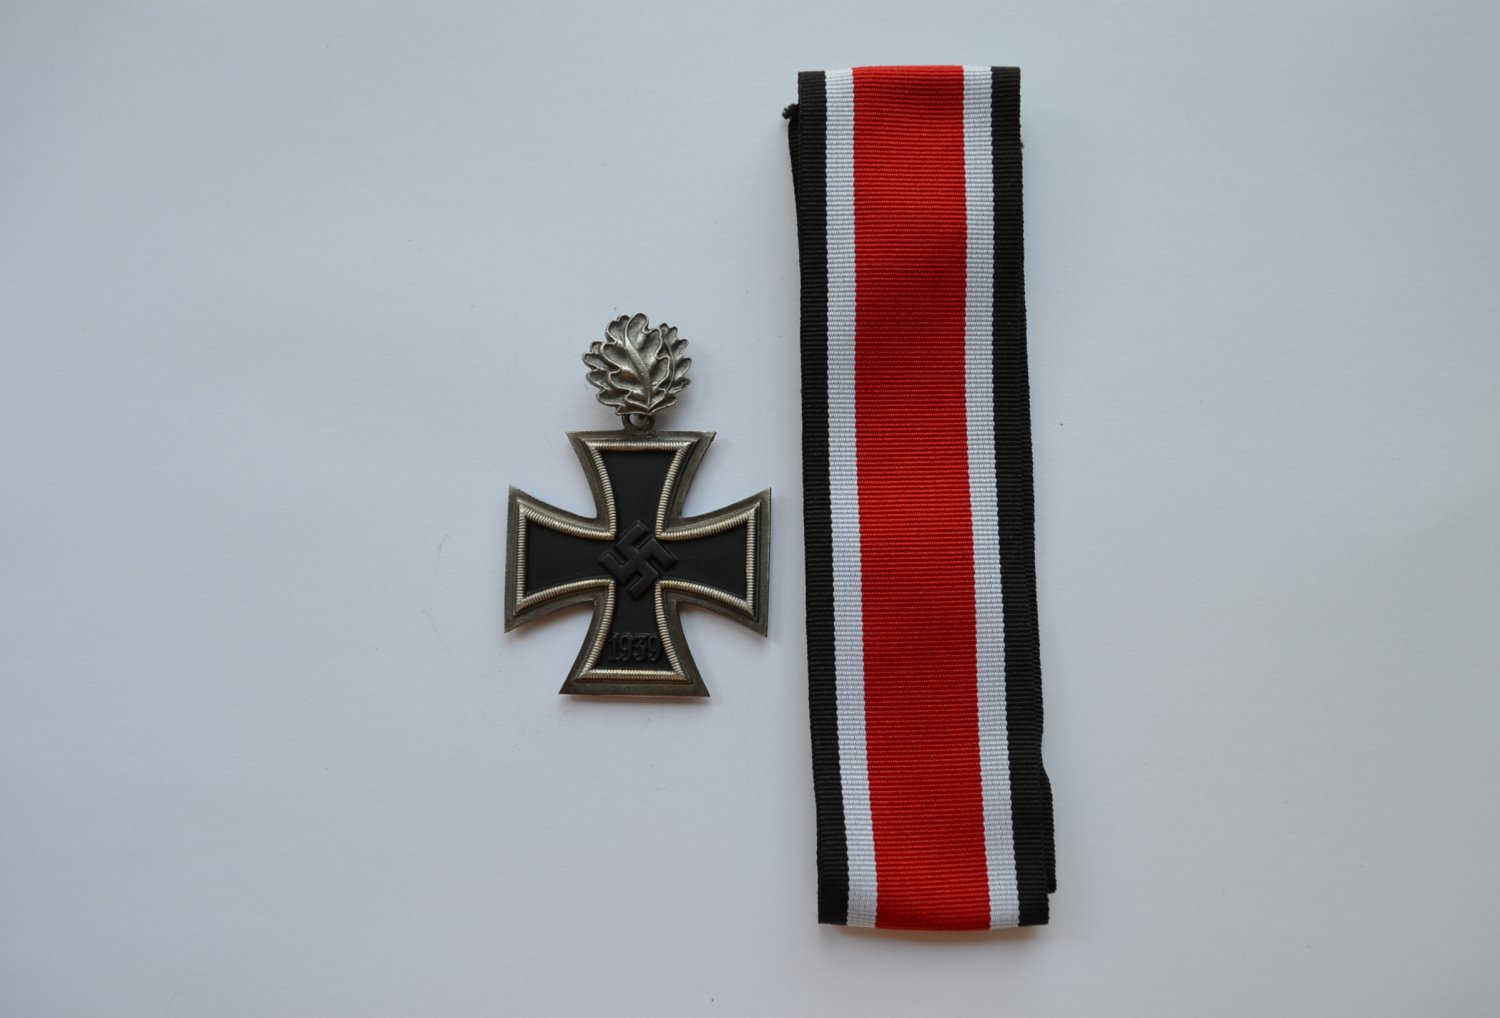 WWII GERMAN KNIGHT�S CROSS OF THE IRON CROSS WITH OAK LEAVES